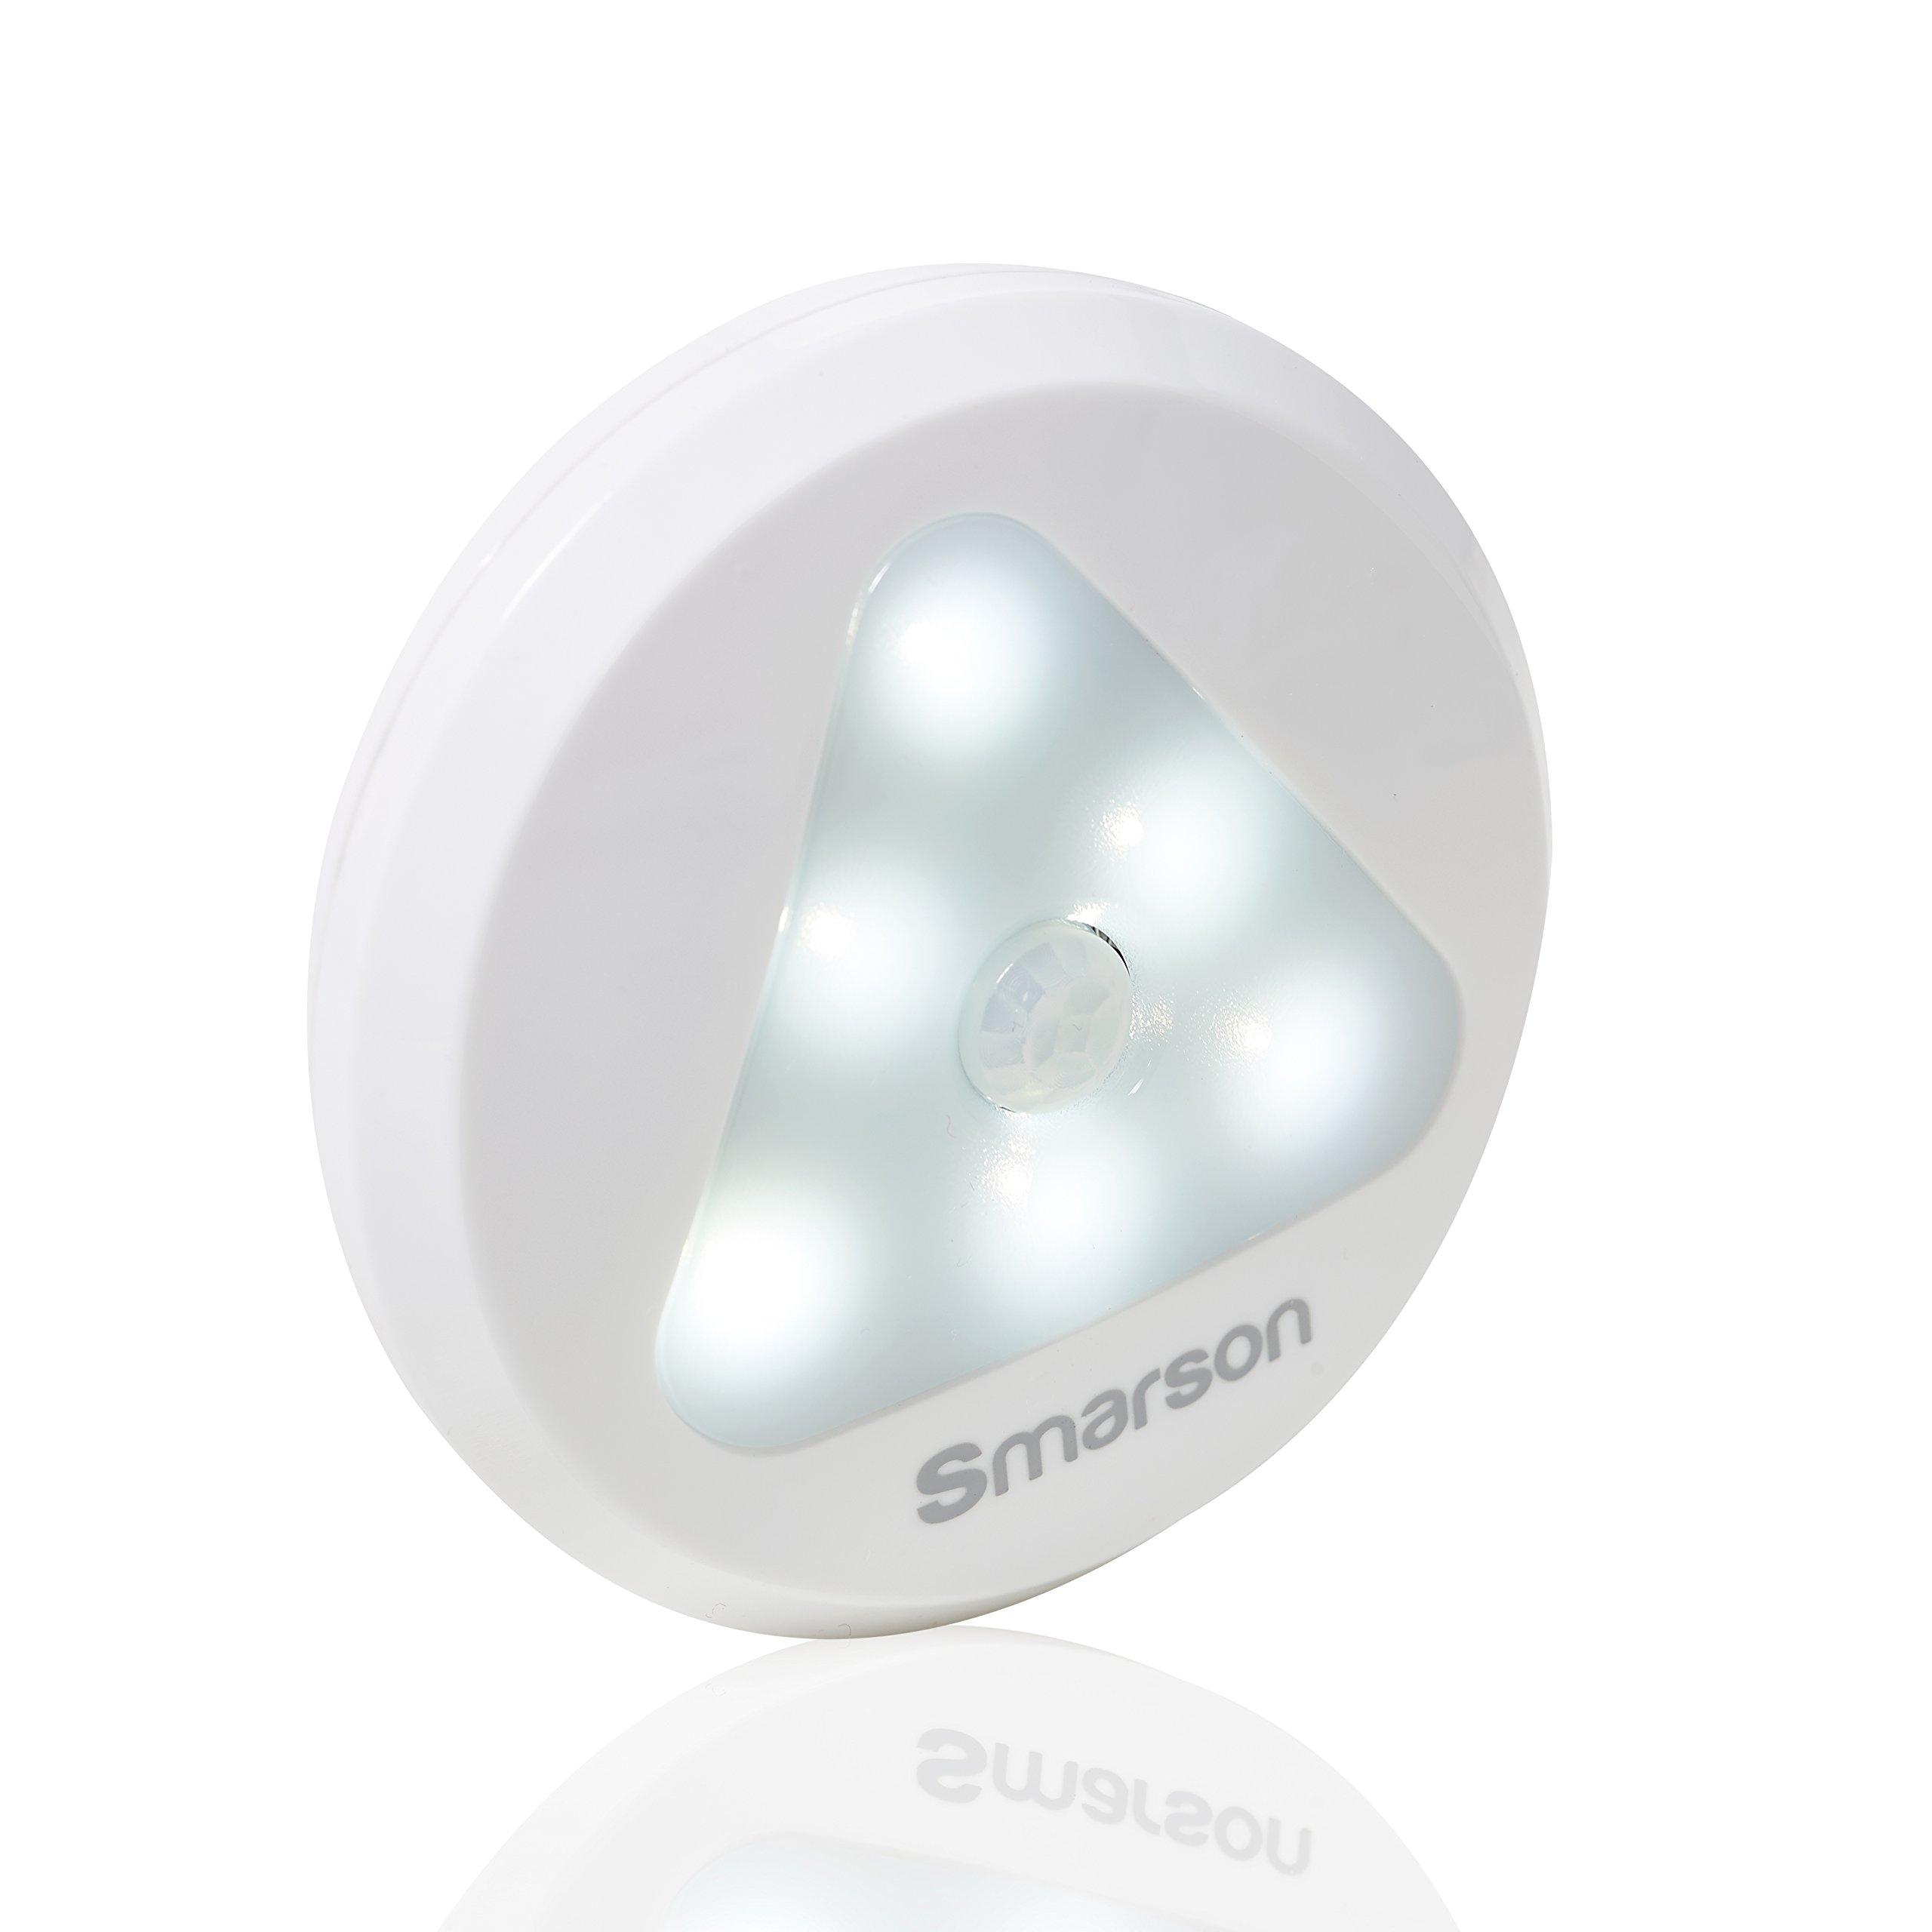 Motion Sensor Energy Saving Wireless 6-LED Night Light With Bright Daylight, 1-Pack, Battery-Powered, Automatic On/Off, Safe For Kids, Stick Anywhere In Bedside, Hallway, Bathroom, Closet, Stairway